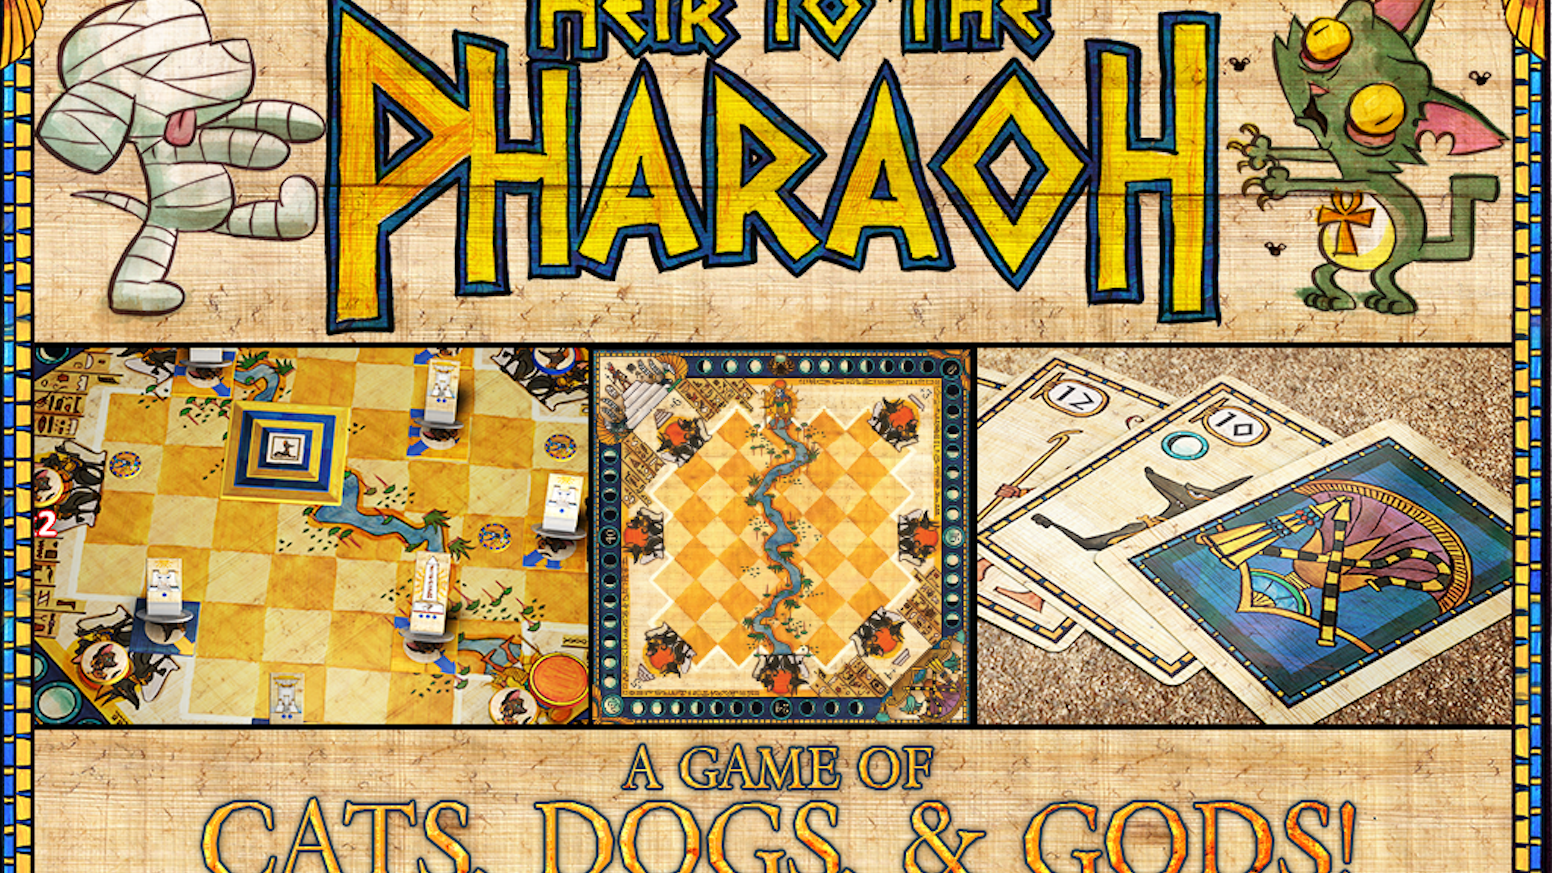 Alf Seegert is a master designer of 2-player games, including The Road to Canterbury, Fantastiqa, Musée and now Heir to the Pharaoh.